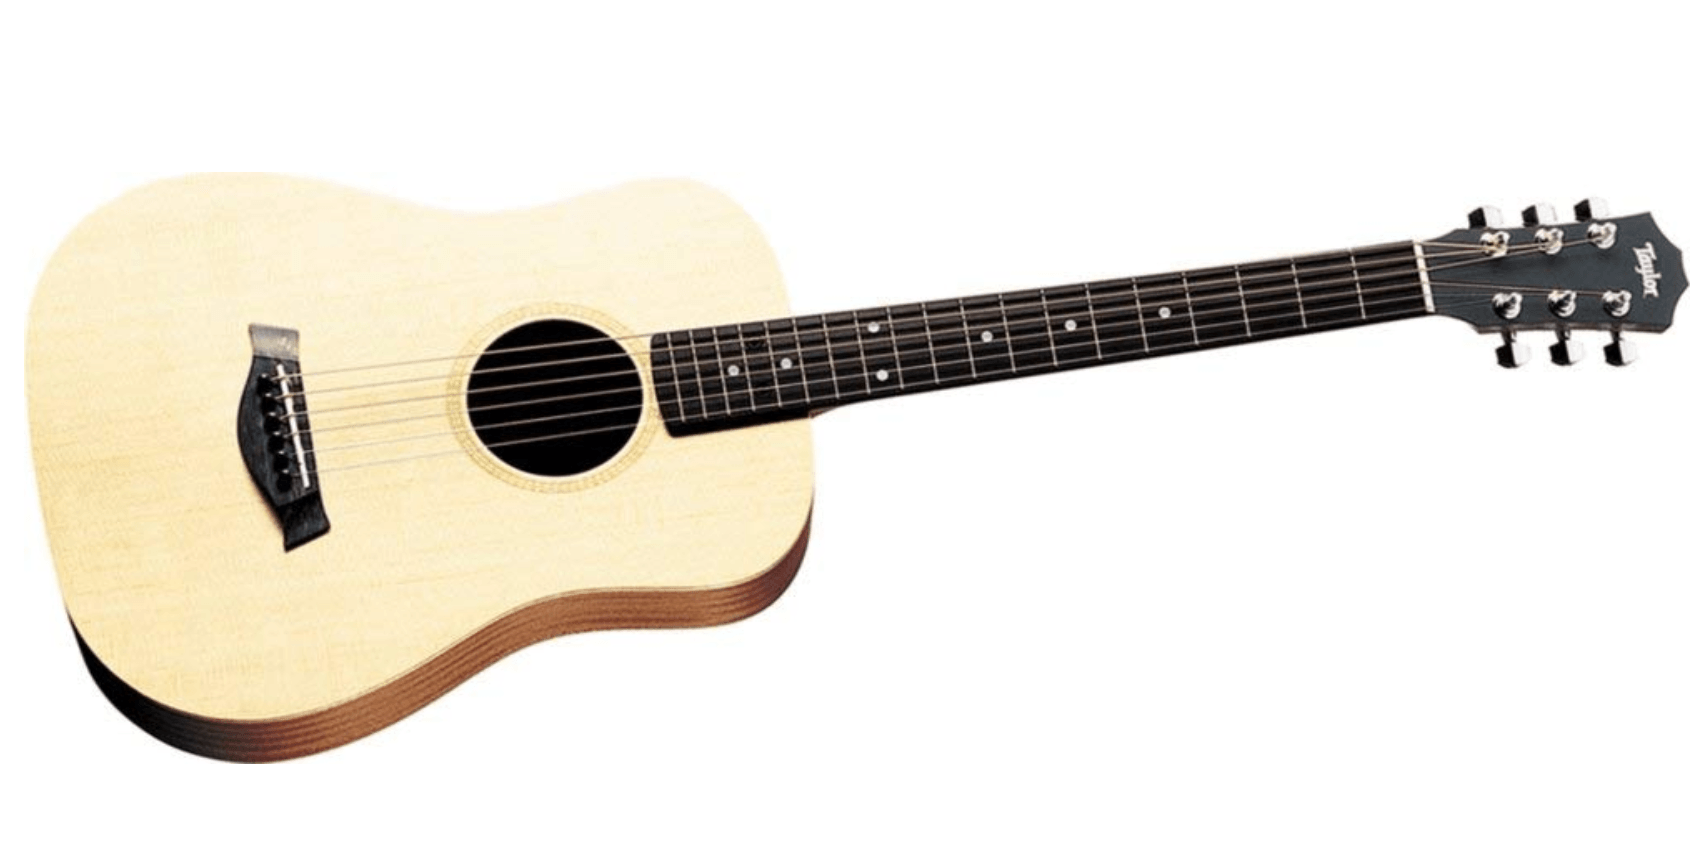 Baby Taylor BT-1 - the second best travel acoustic guitar